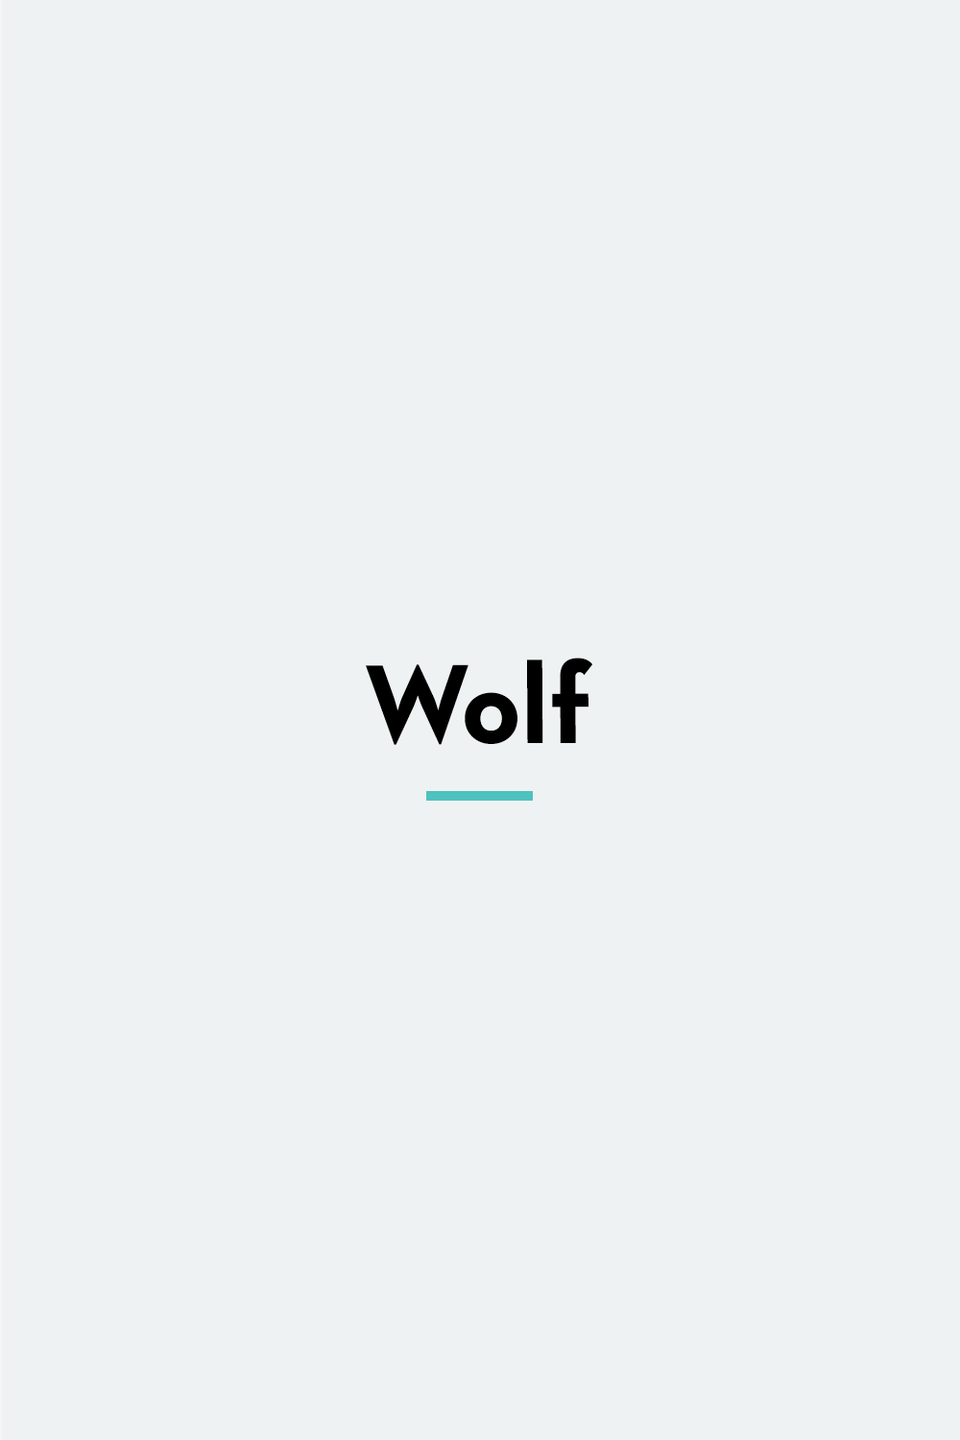 """<p>Parents in Spain were so riled up when the name they picked for their son, Lobo, meaning """"Wolf,"""" was considered offensive that <a href=""""https://www.foxnews.com/lifestyle/spanish-officials-relent-allow-parents-to-name-their-son-wolf"""" rel=""""nofollow noopener"""" target=""""_blank"""" data-ylk=""""slk:they started an online petition"""" class=""""link rapid-noclick-resp"""">they started an online petition</a> in their defense. After receiving more than 25,000 signatures, the Spanish officials relented.</p>"""